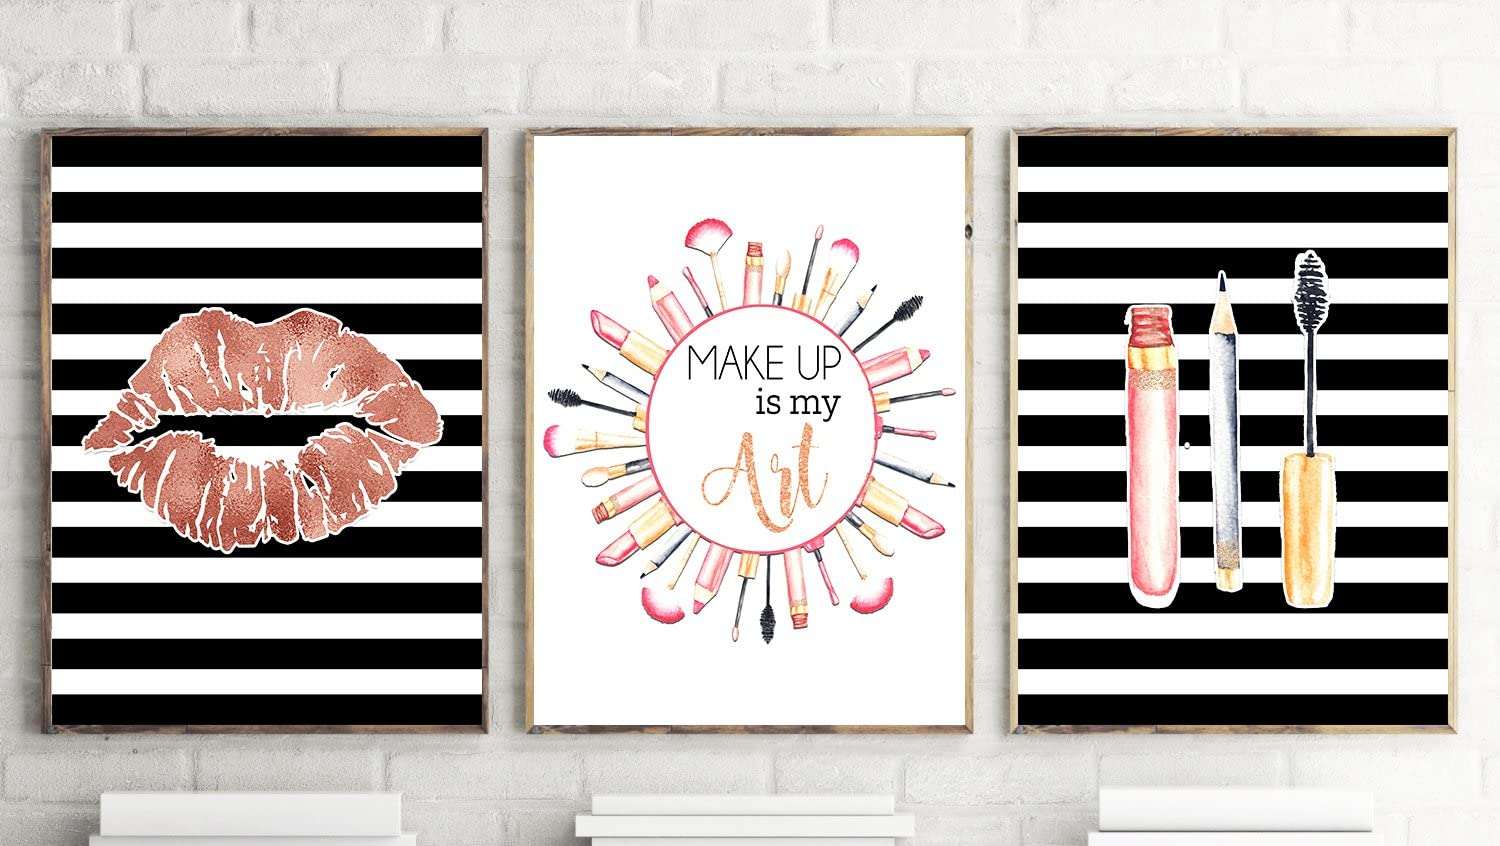 Silly Goose Gifts Make Up is My Art - Room Wall Art Prints (Set of Three) 8x10in